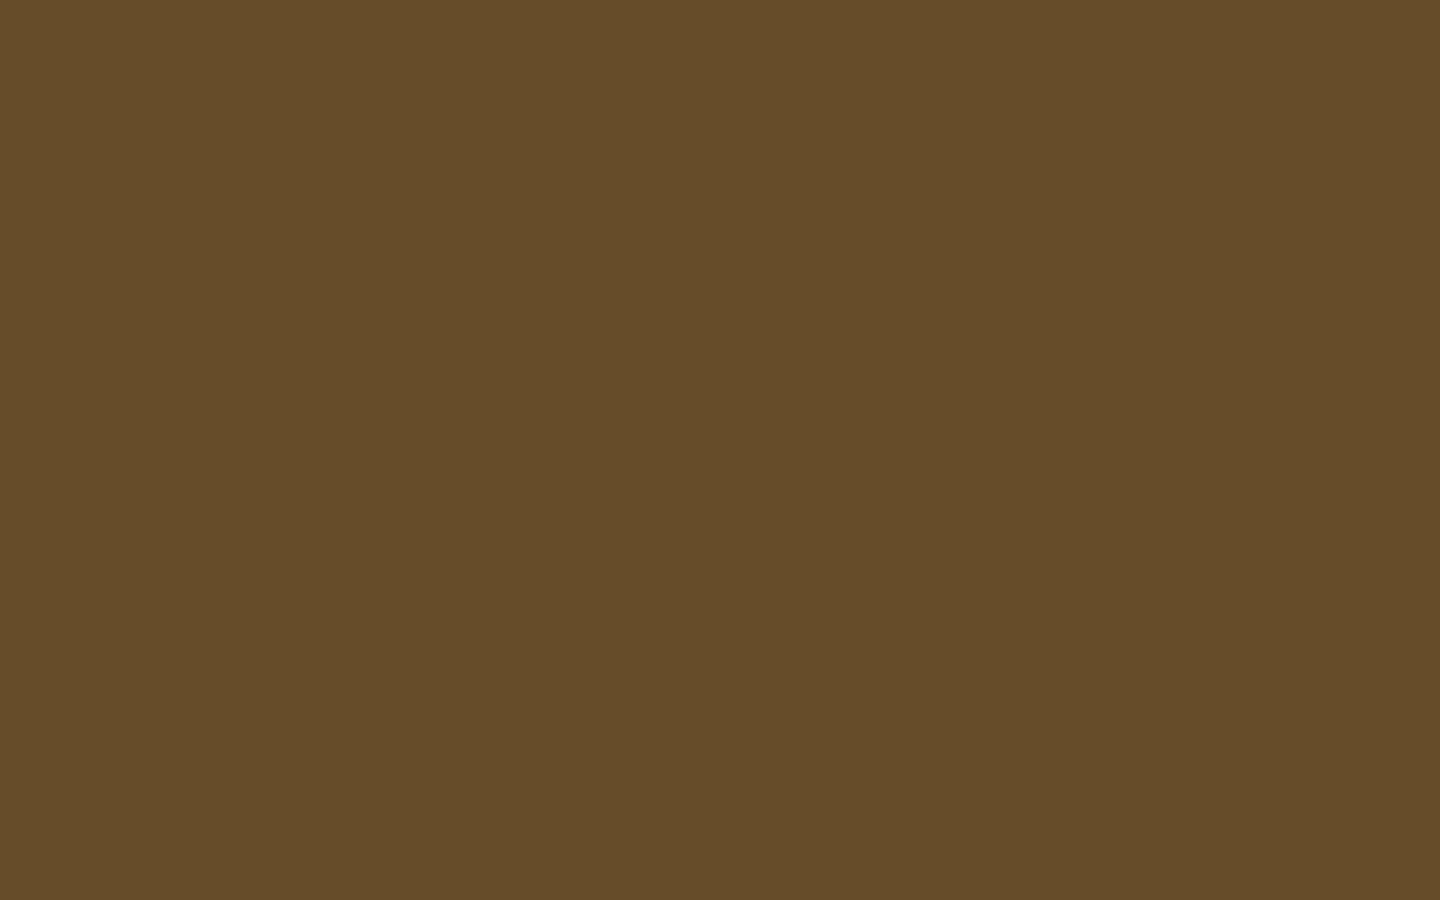 1440x900 Donkey Brown Solid Color Background